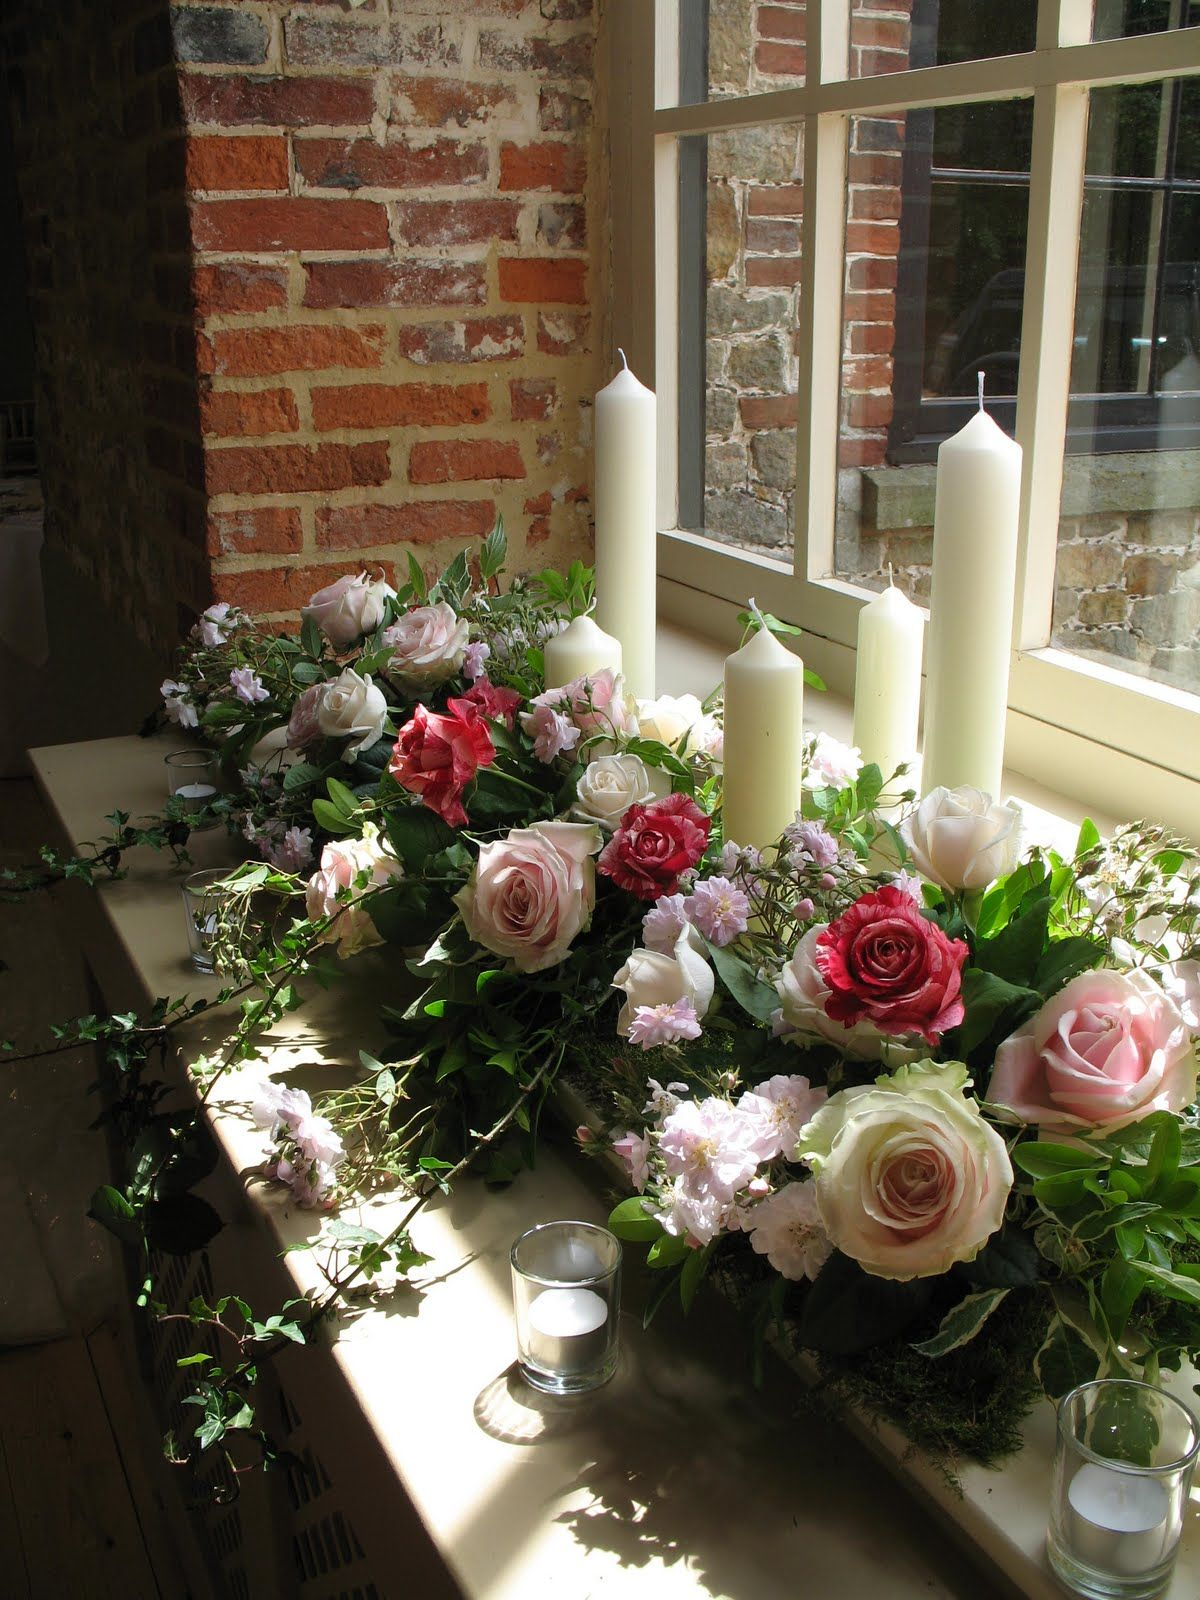 Lovely For A Table Centerpiece For Valentines, Mothers Day, And